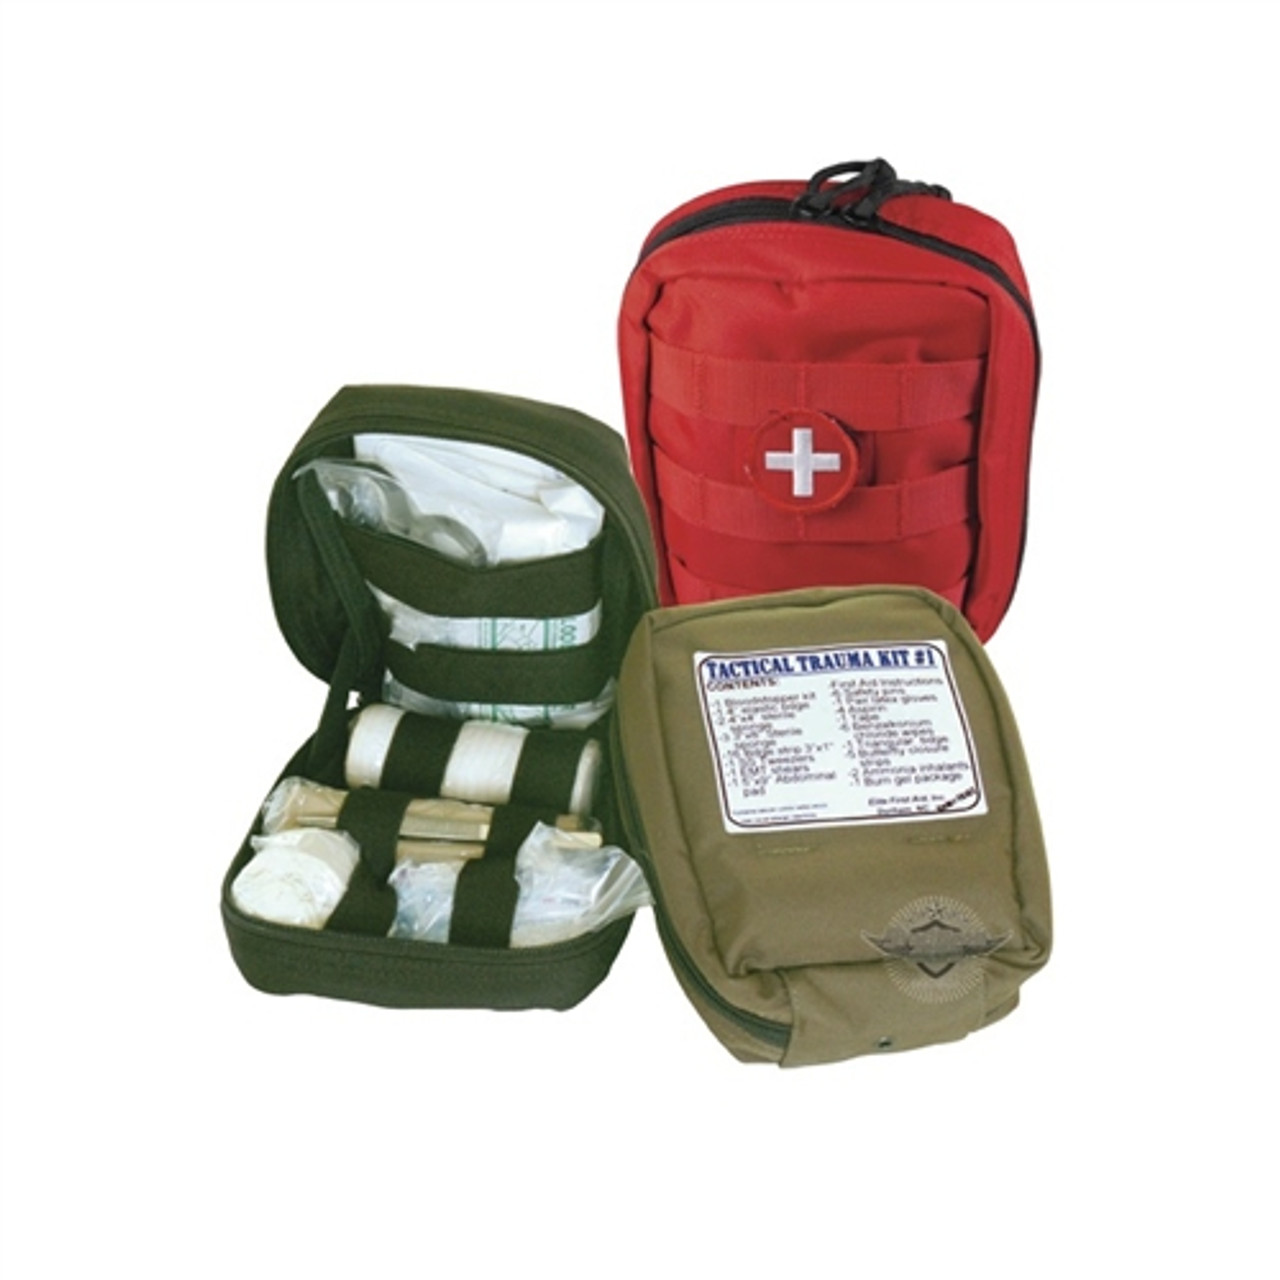 Tactical Trauma Kit from Hessen Antique